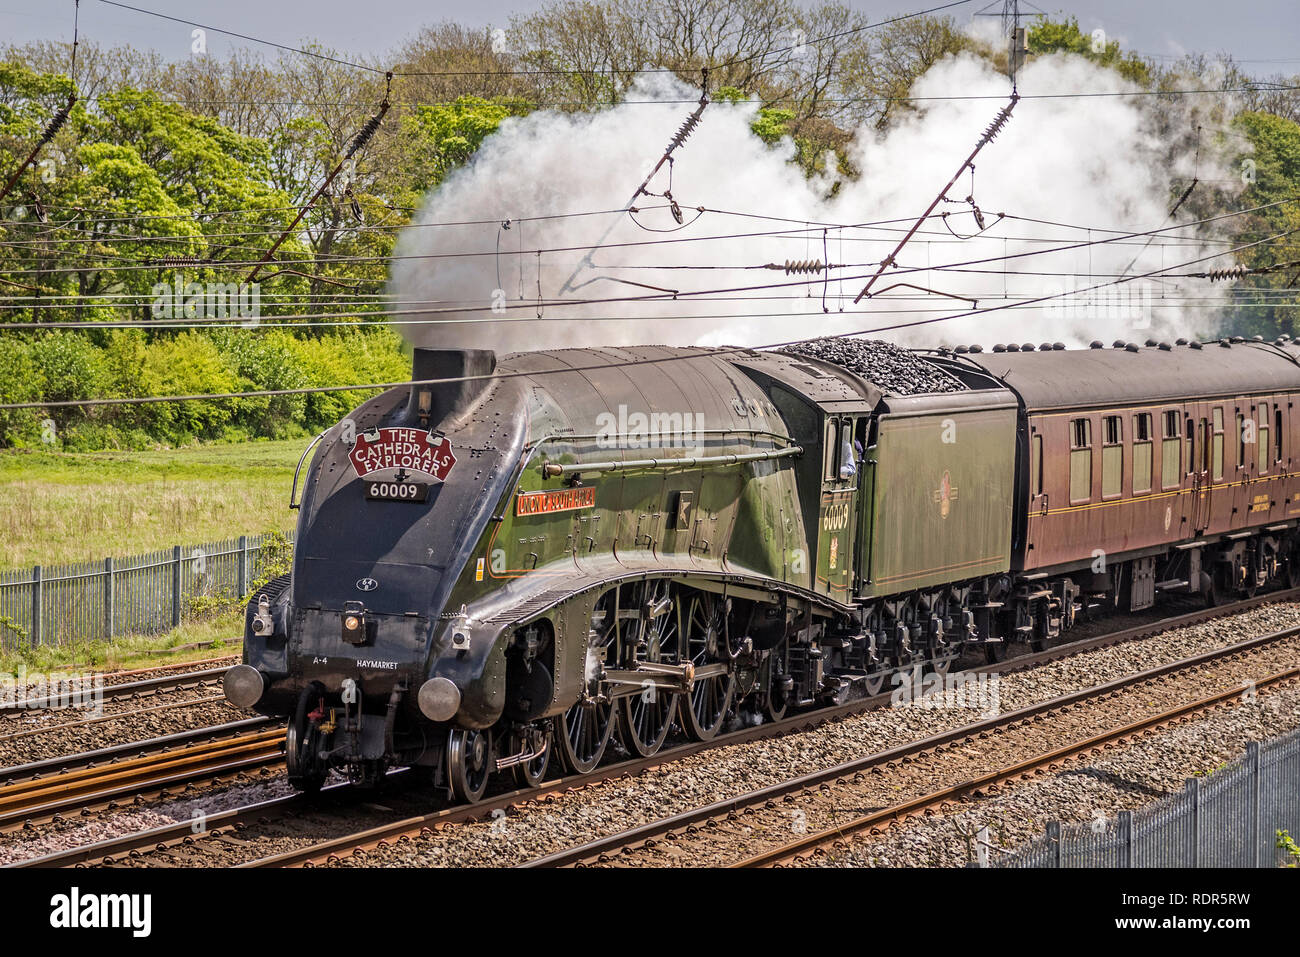 Union of Soiuth Africa A4 Pacific class steam locomotive hauls the Cathedrals Explorer rail tour on the West Coast Main Line WCML at Winwick. - Stock Image